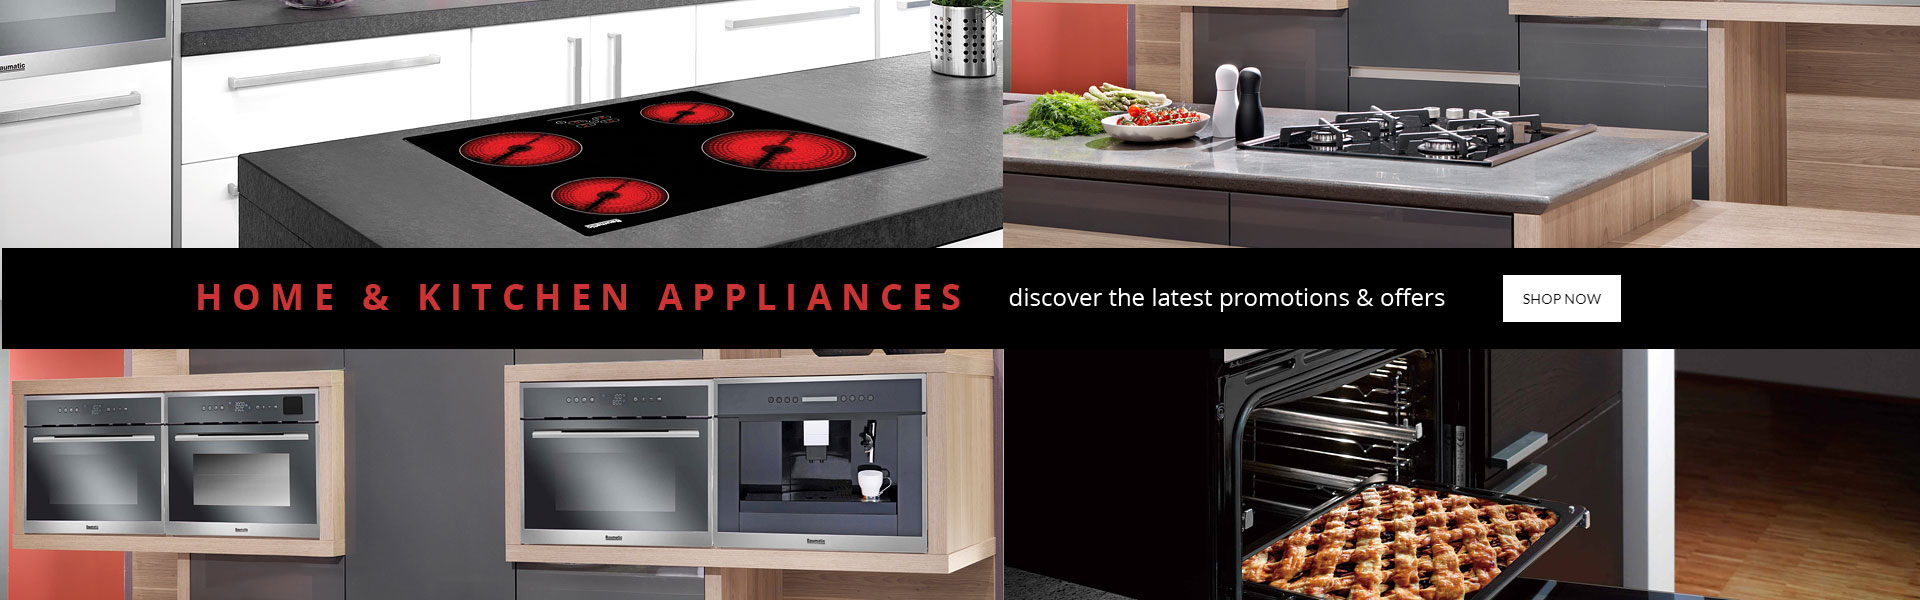 Baumatic Hong Kong Home & Kitchen Appliances Baumatic 香港家庭電器 ...